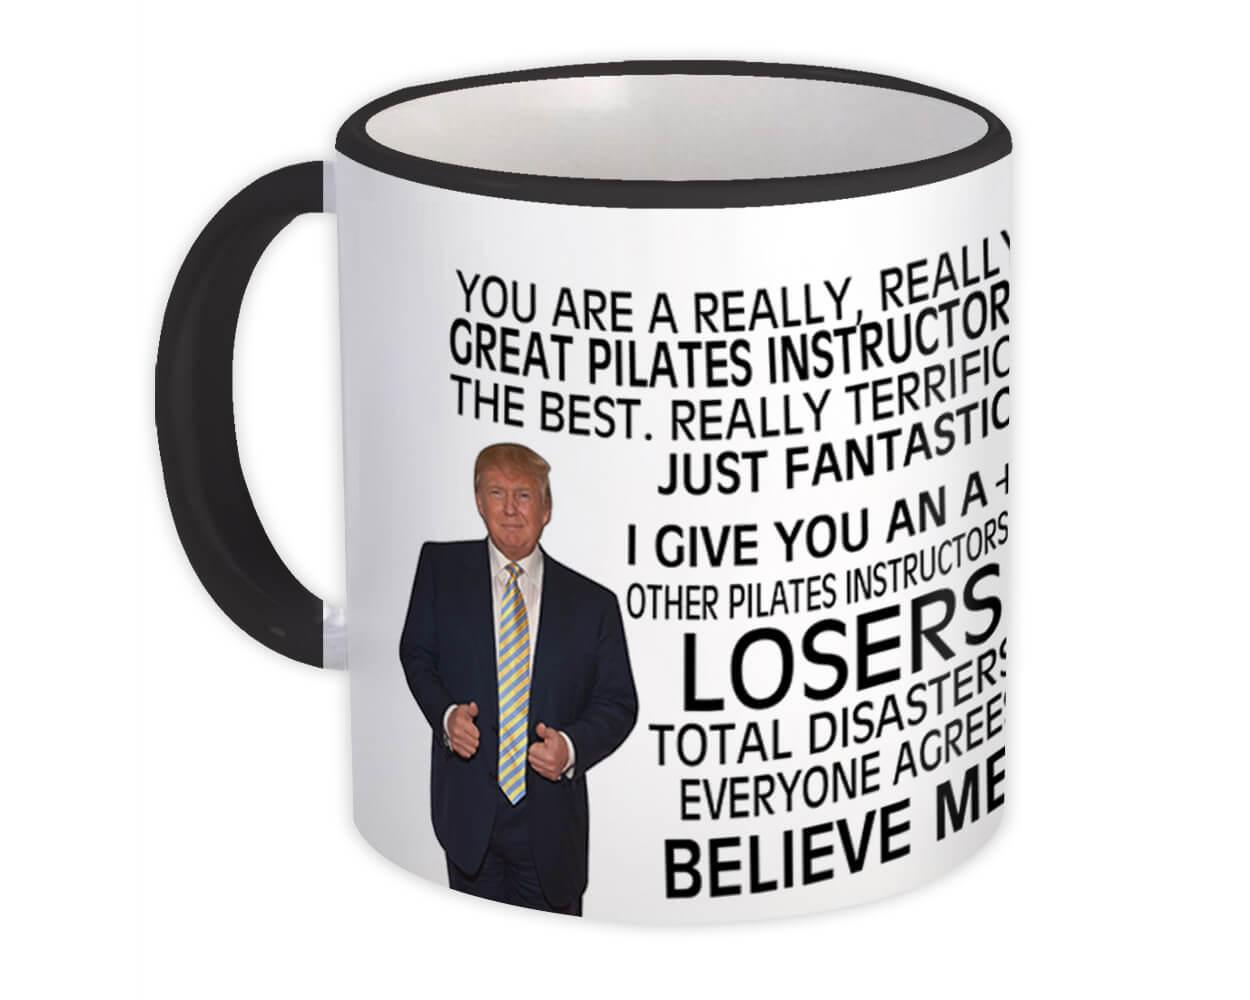 Gift for Pilates Instructor : Gift Mug Donald Trump Great Pilates Instructor Funny Christmas